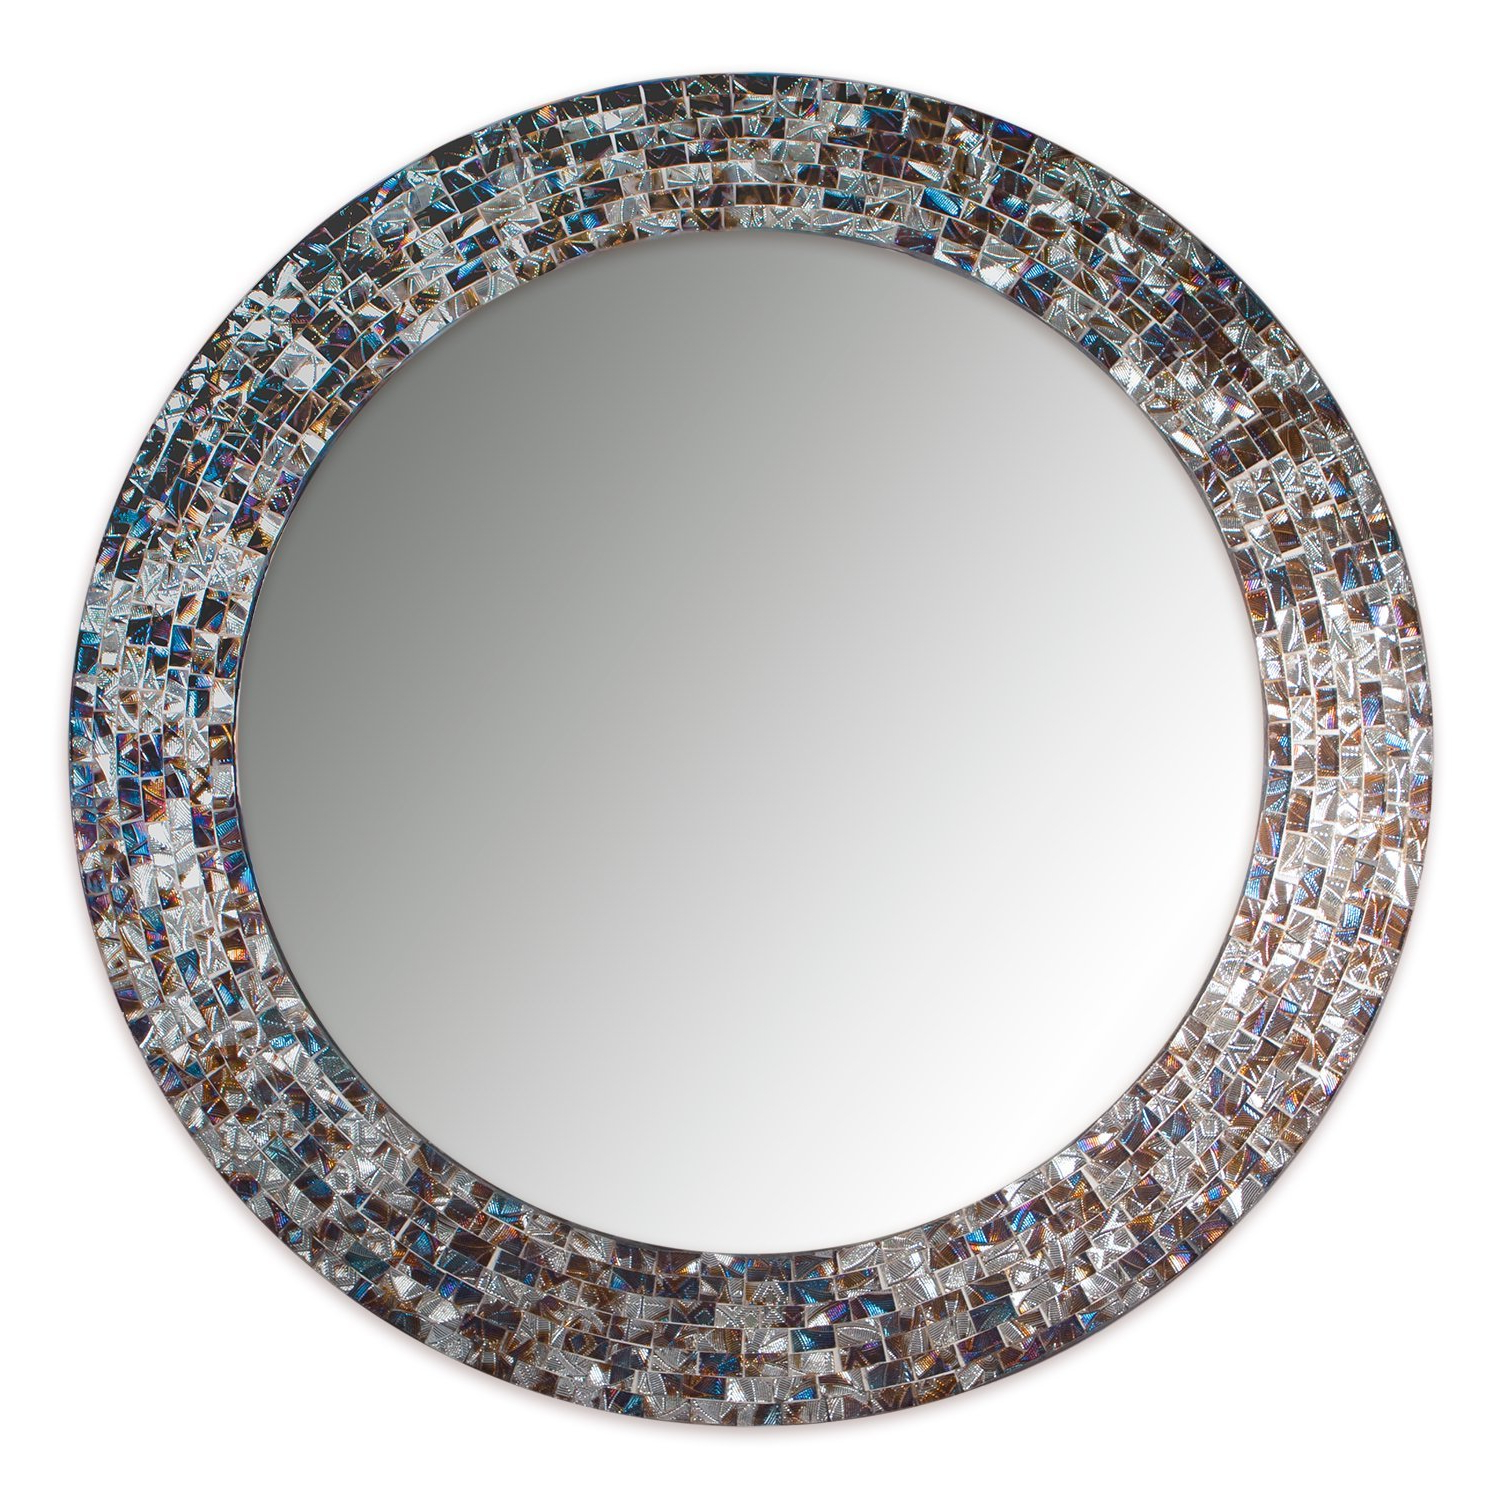 "Mosaic Wall Mirrors Throughout Best And Newest Decorshore 24"" Decorative Mosaic Glass Wall Mirror – Silver (Silver) (Gallery 13 of 20)"